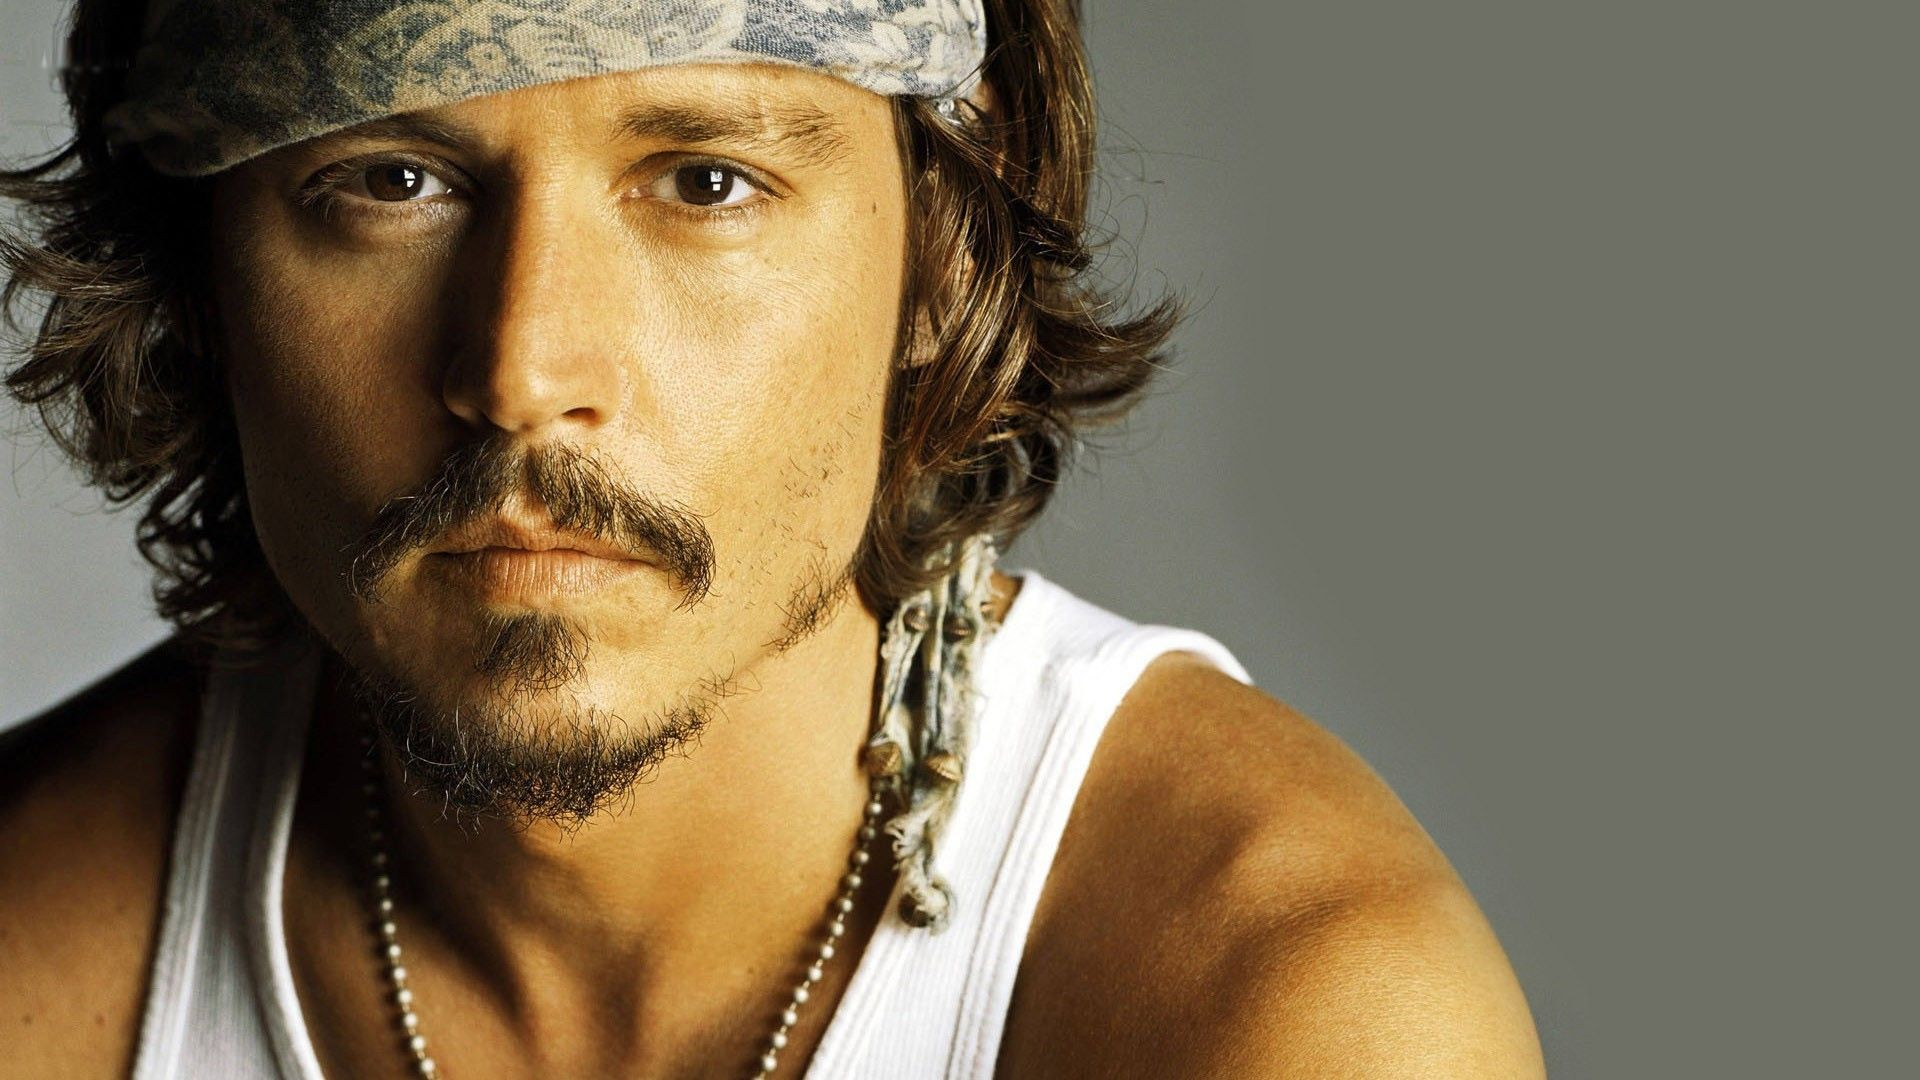 Johnny Depp Wallpapers High Quality